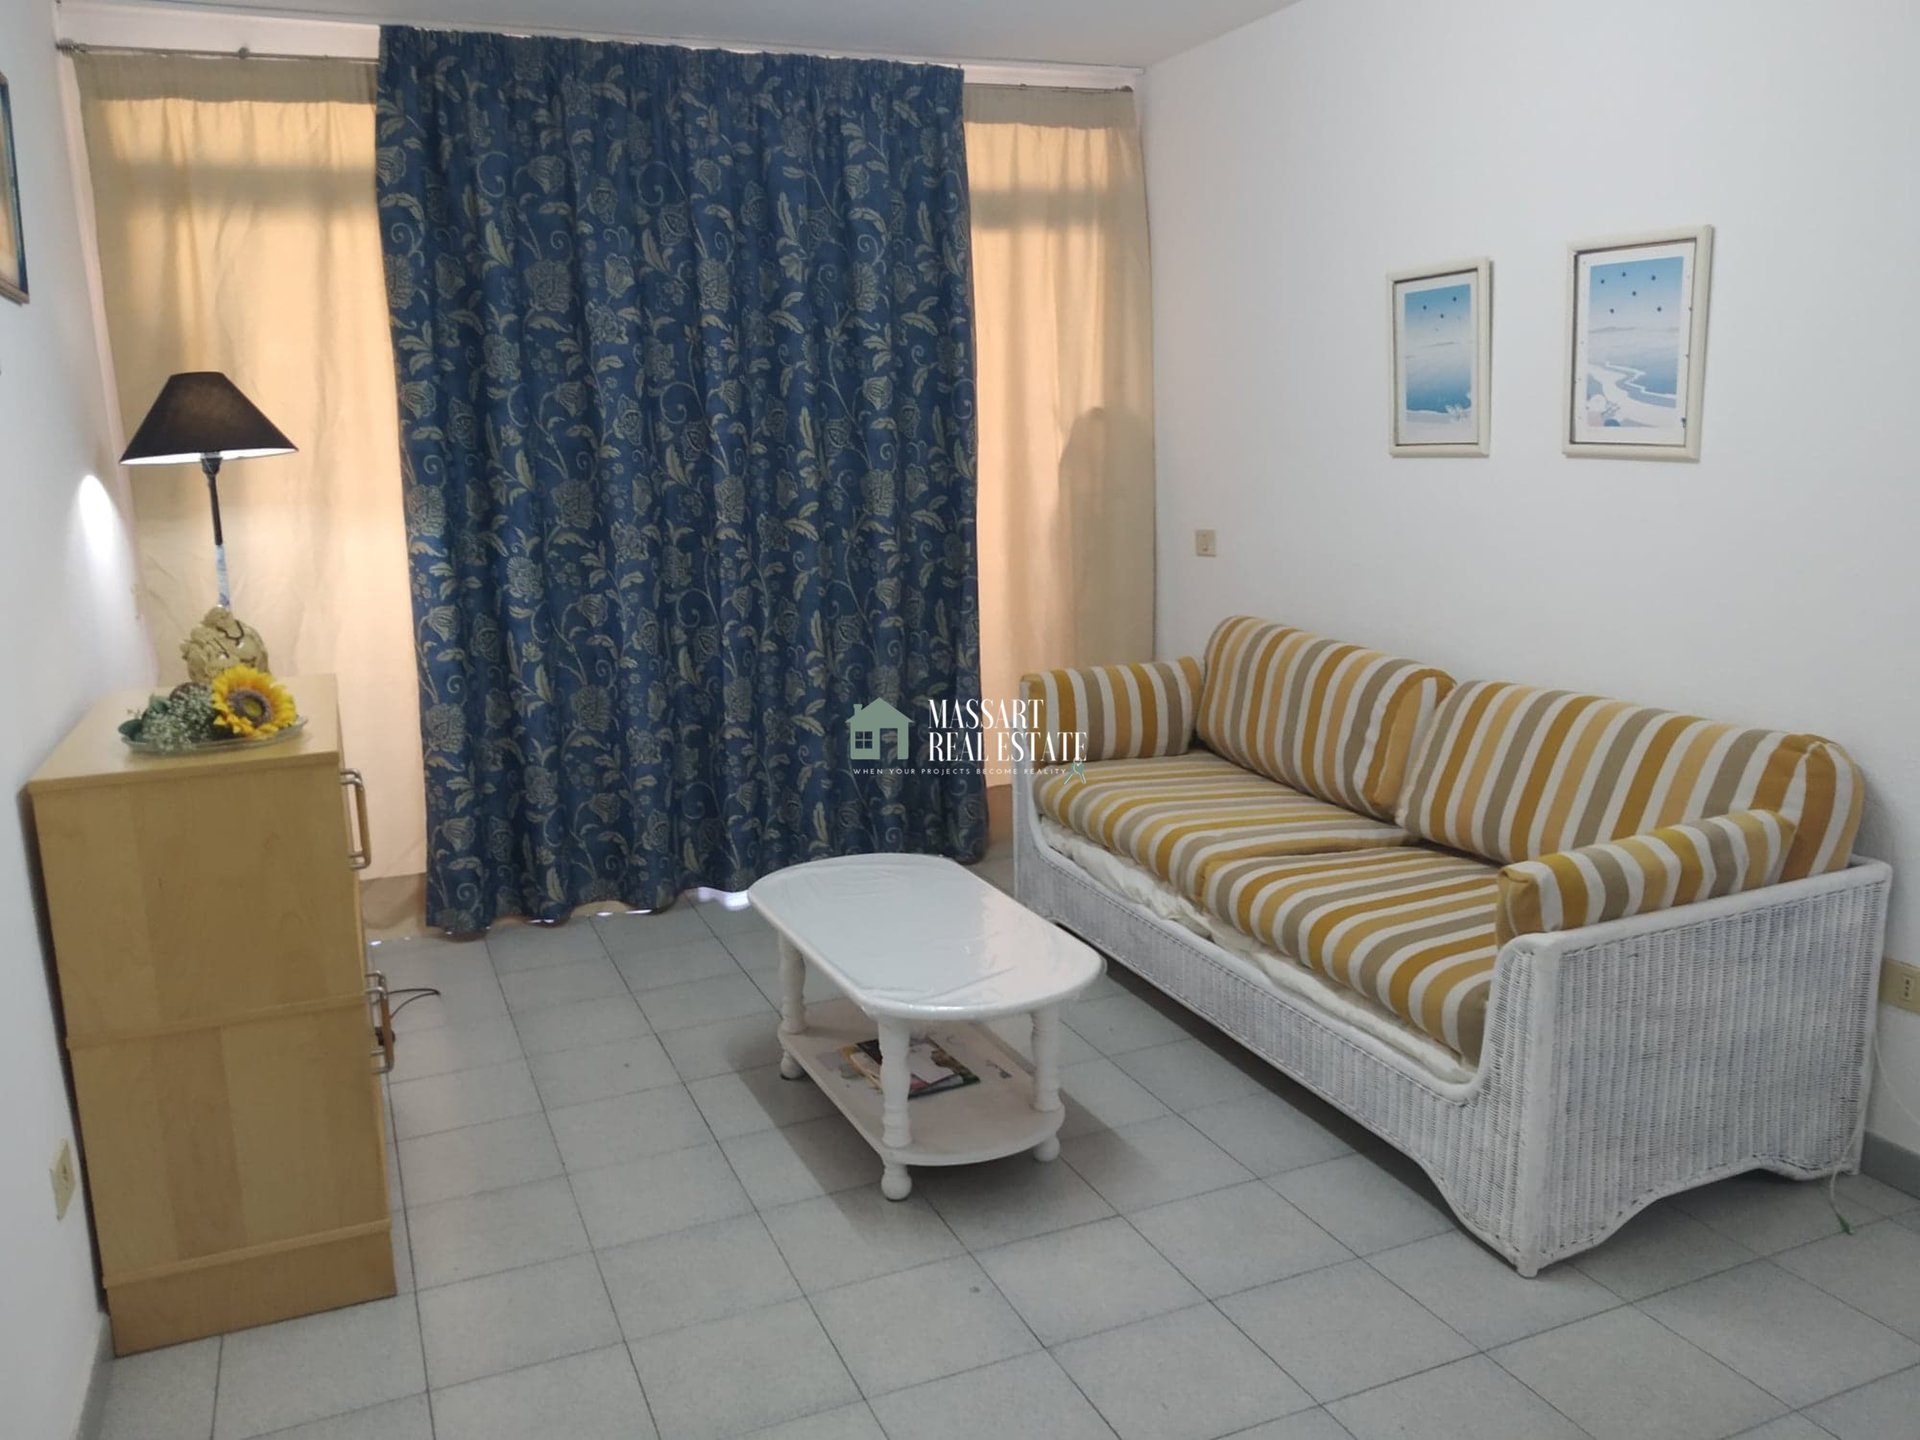 53 m2 furnished apartment in a strategic area of Los Cristianos ... very close to the beach and the promenade!